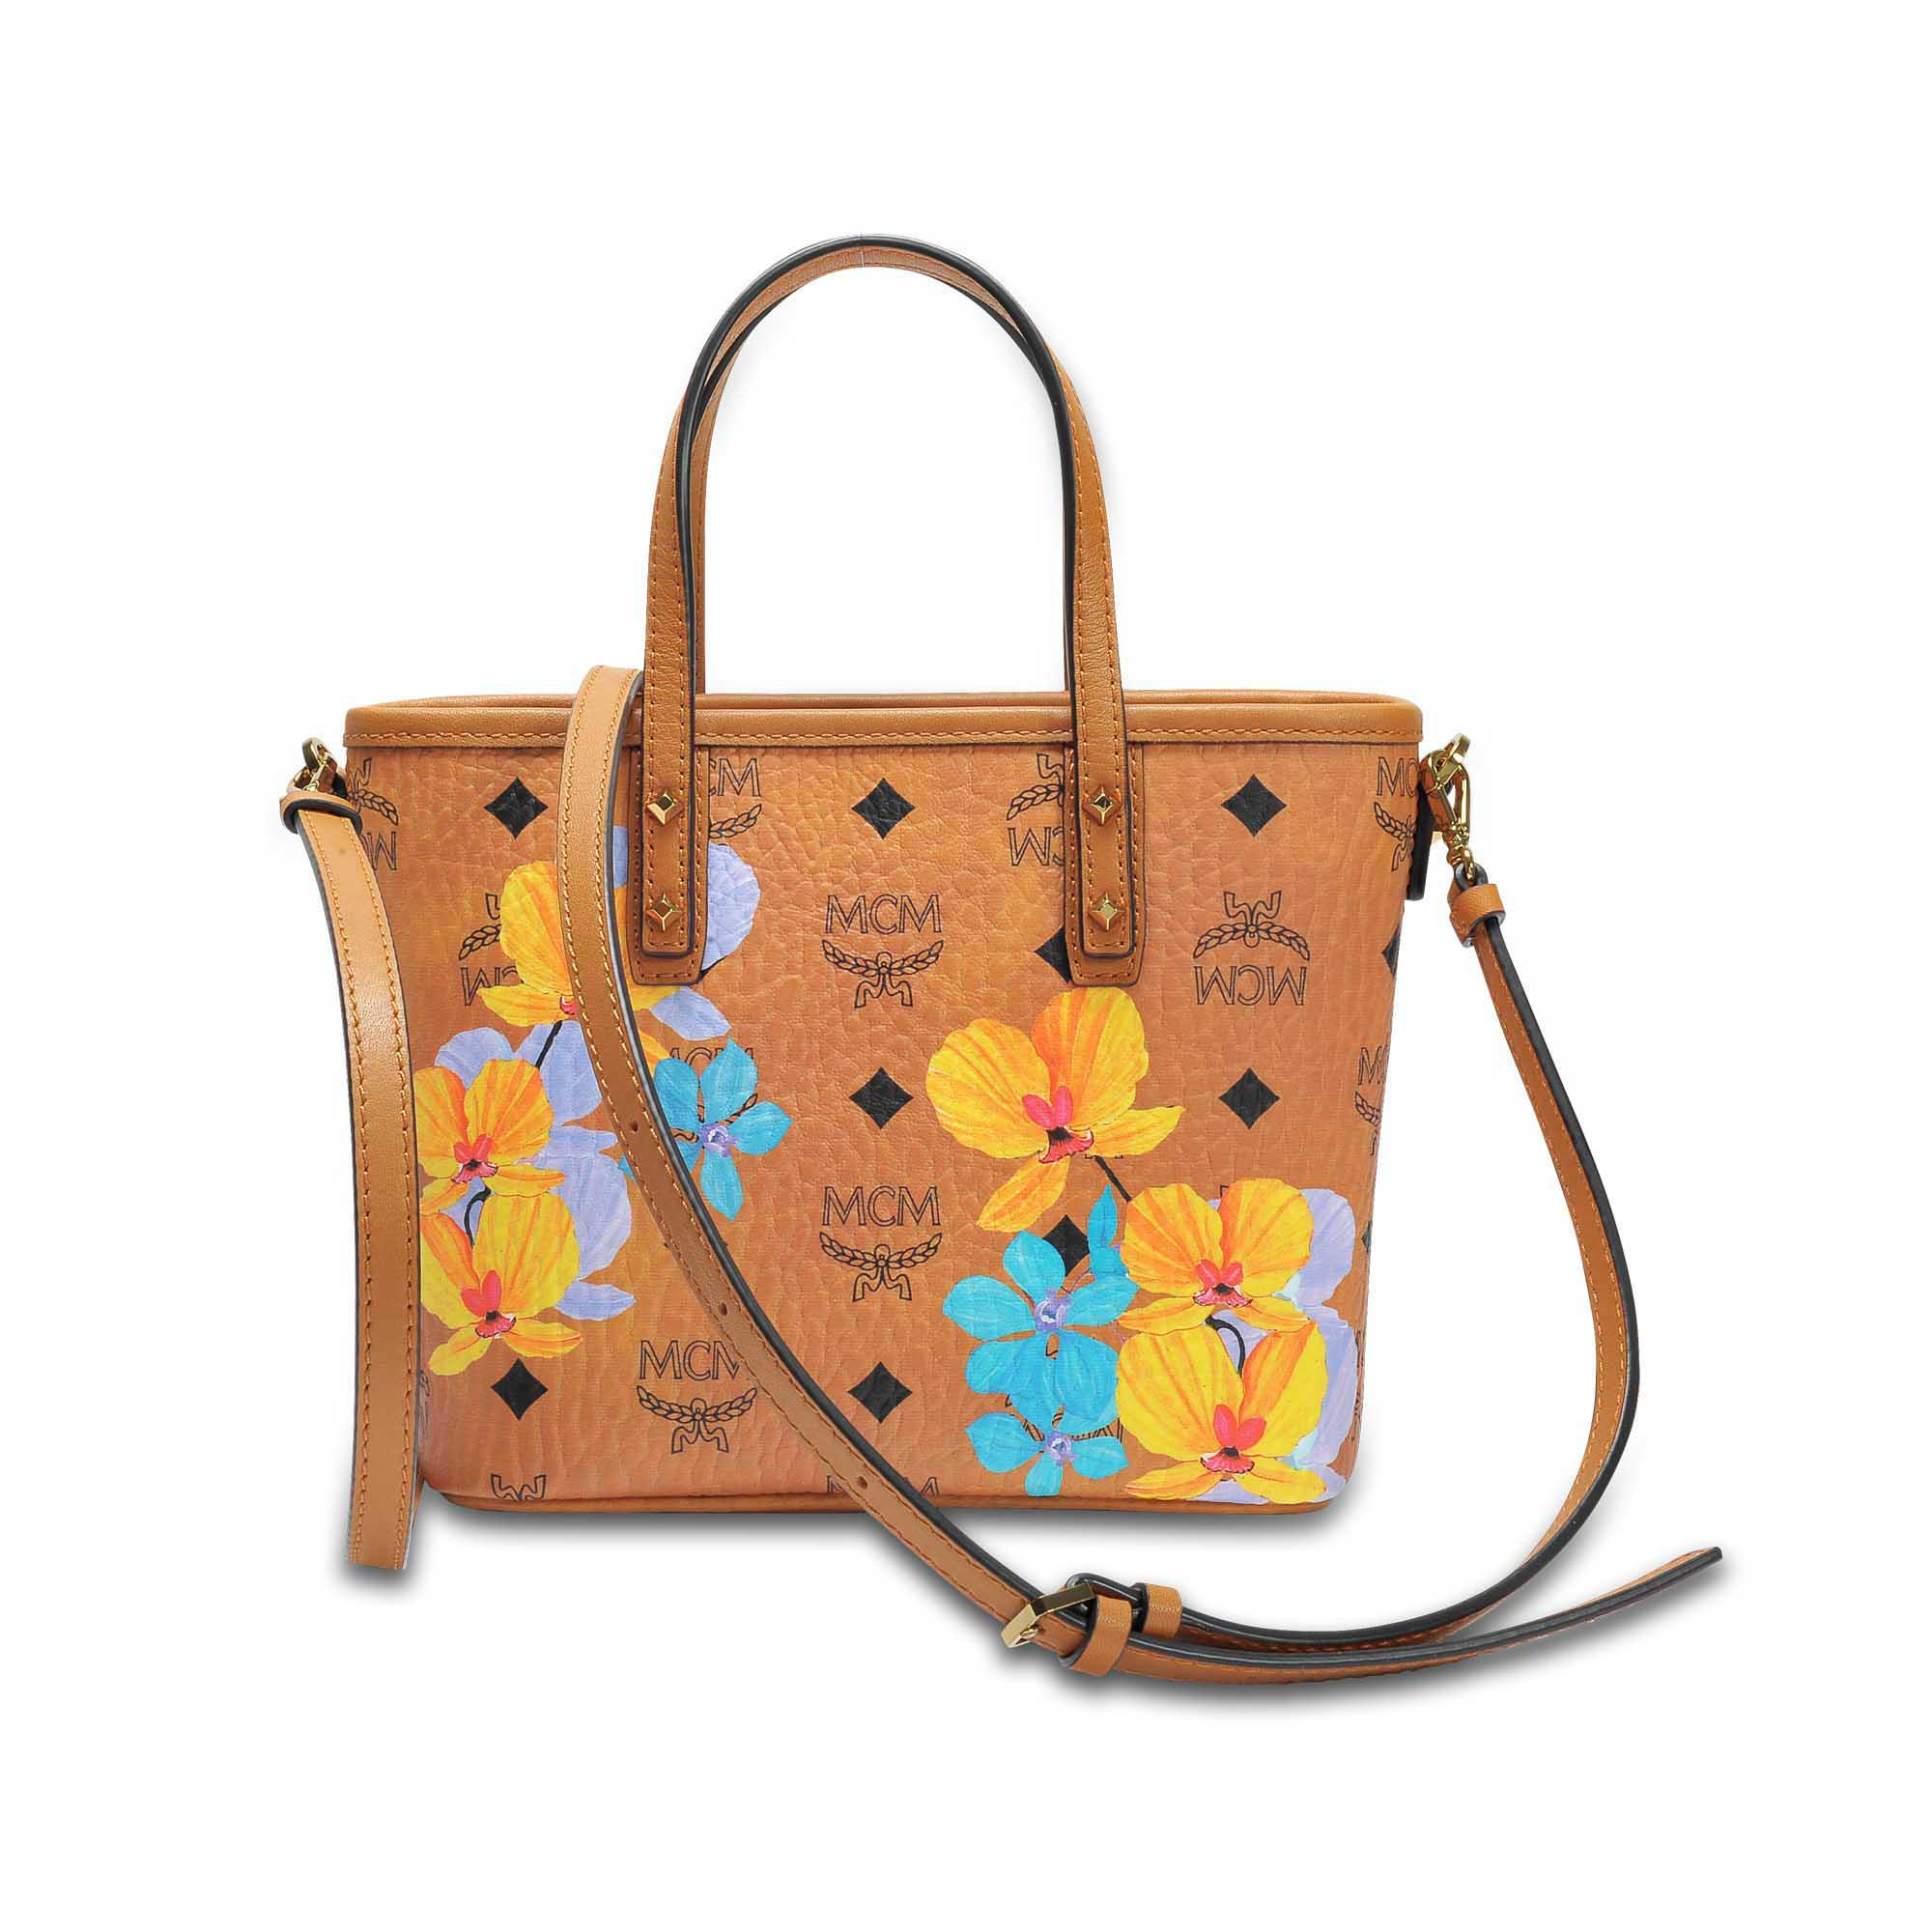 Flower Mini Crossbody Bag in Cognac Coated Cotton MCM